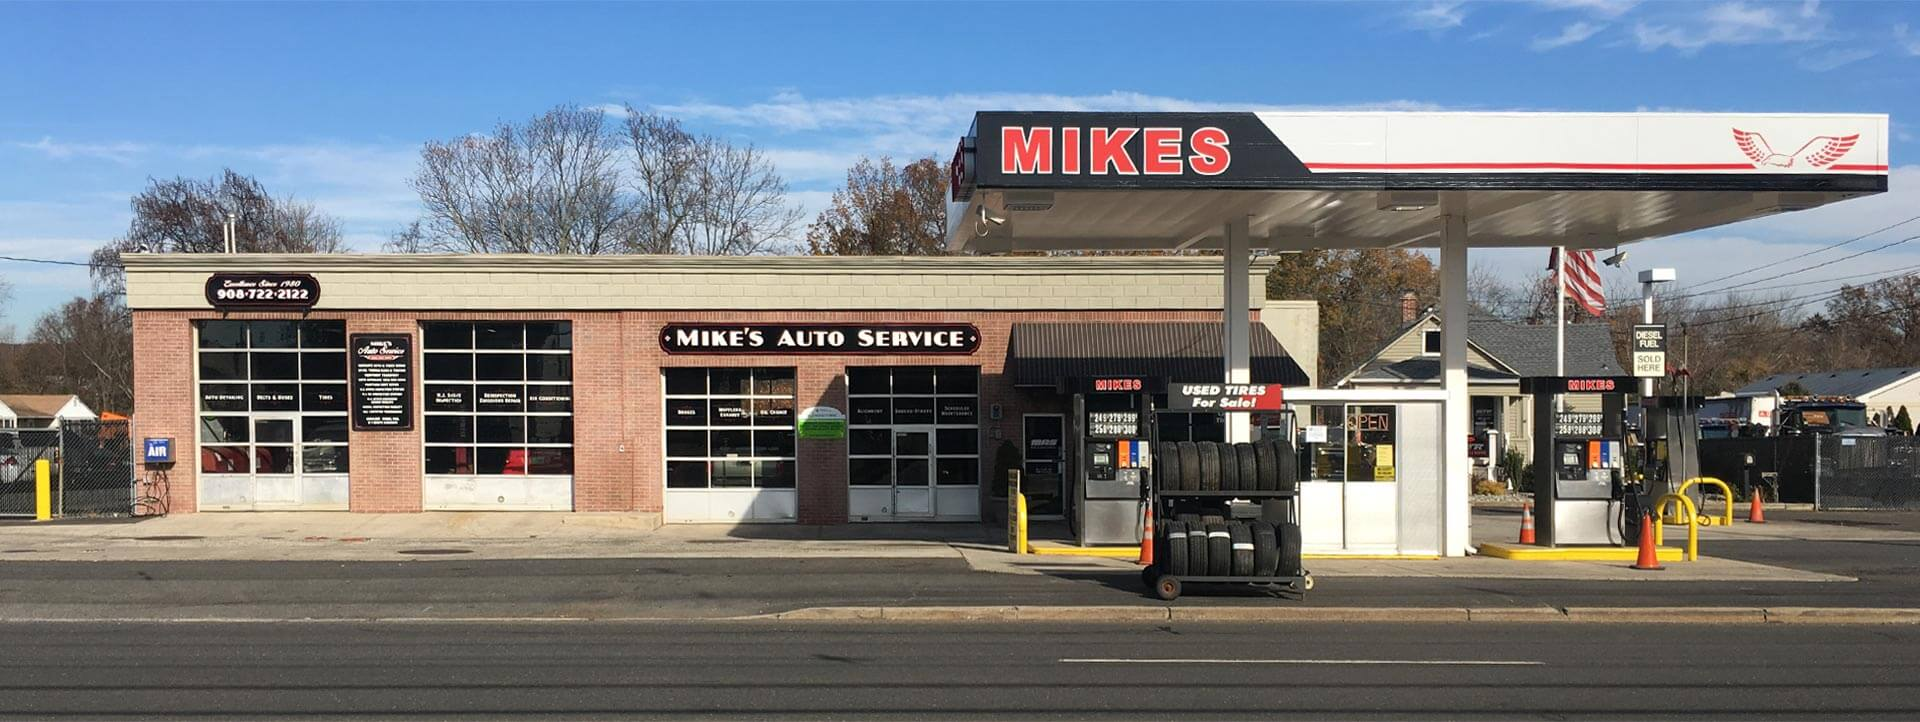 At Mike's Auto Service, our goal is to provide quality repairs and excellent customer service at an affordable price. Our ASE certified technicians are highly trained and experienced with all makes and models. And for additional peace of mind, all repairs are covered by a 3 year/100,000 mile warranty.